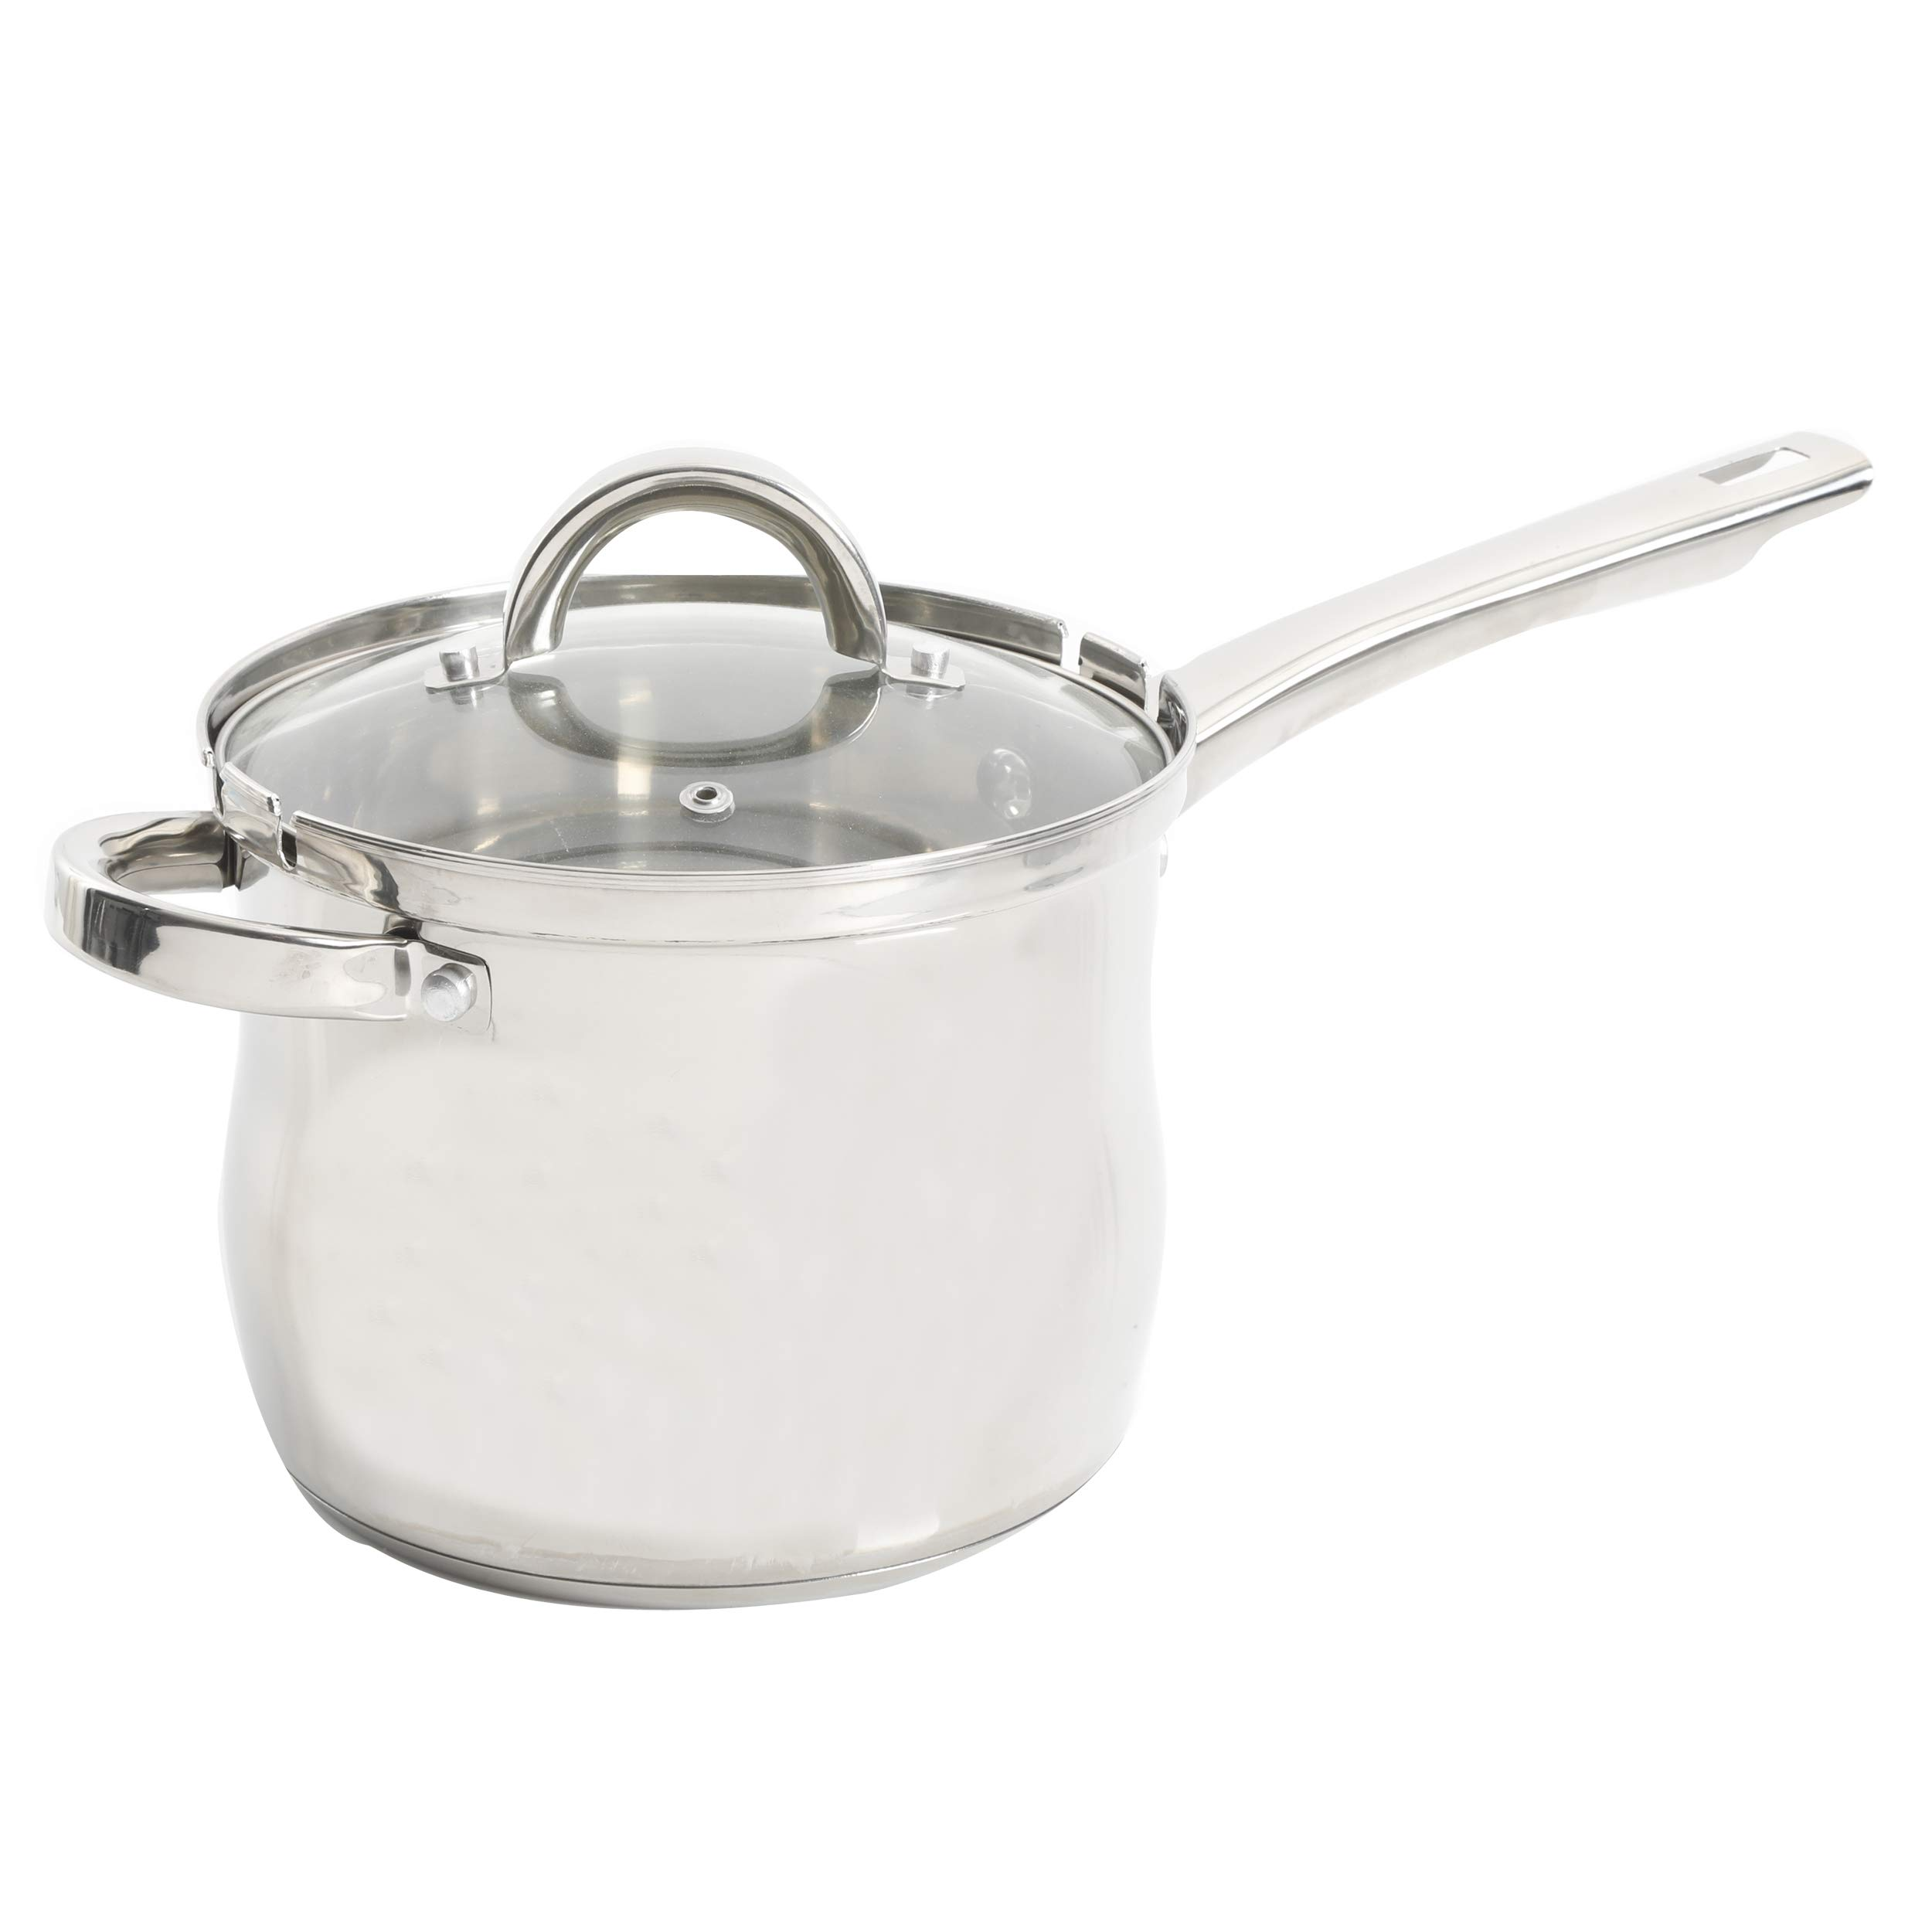 Oster Sangerfield Stainless Steel Cookware, Multi-Size